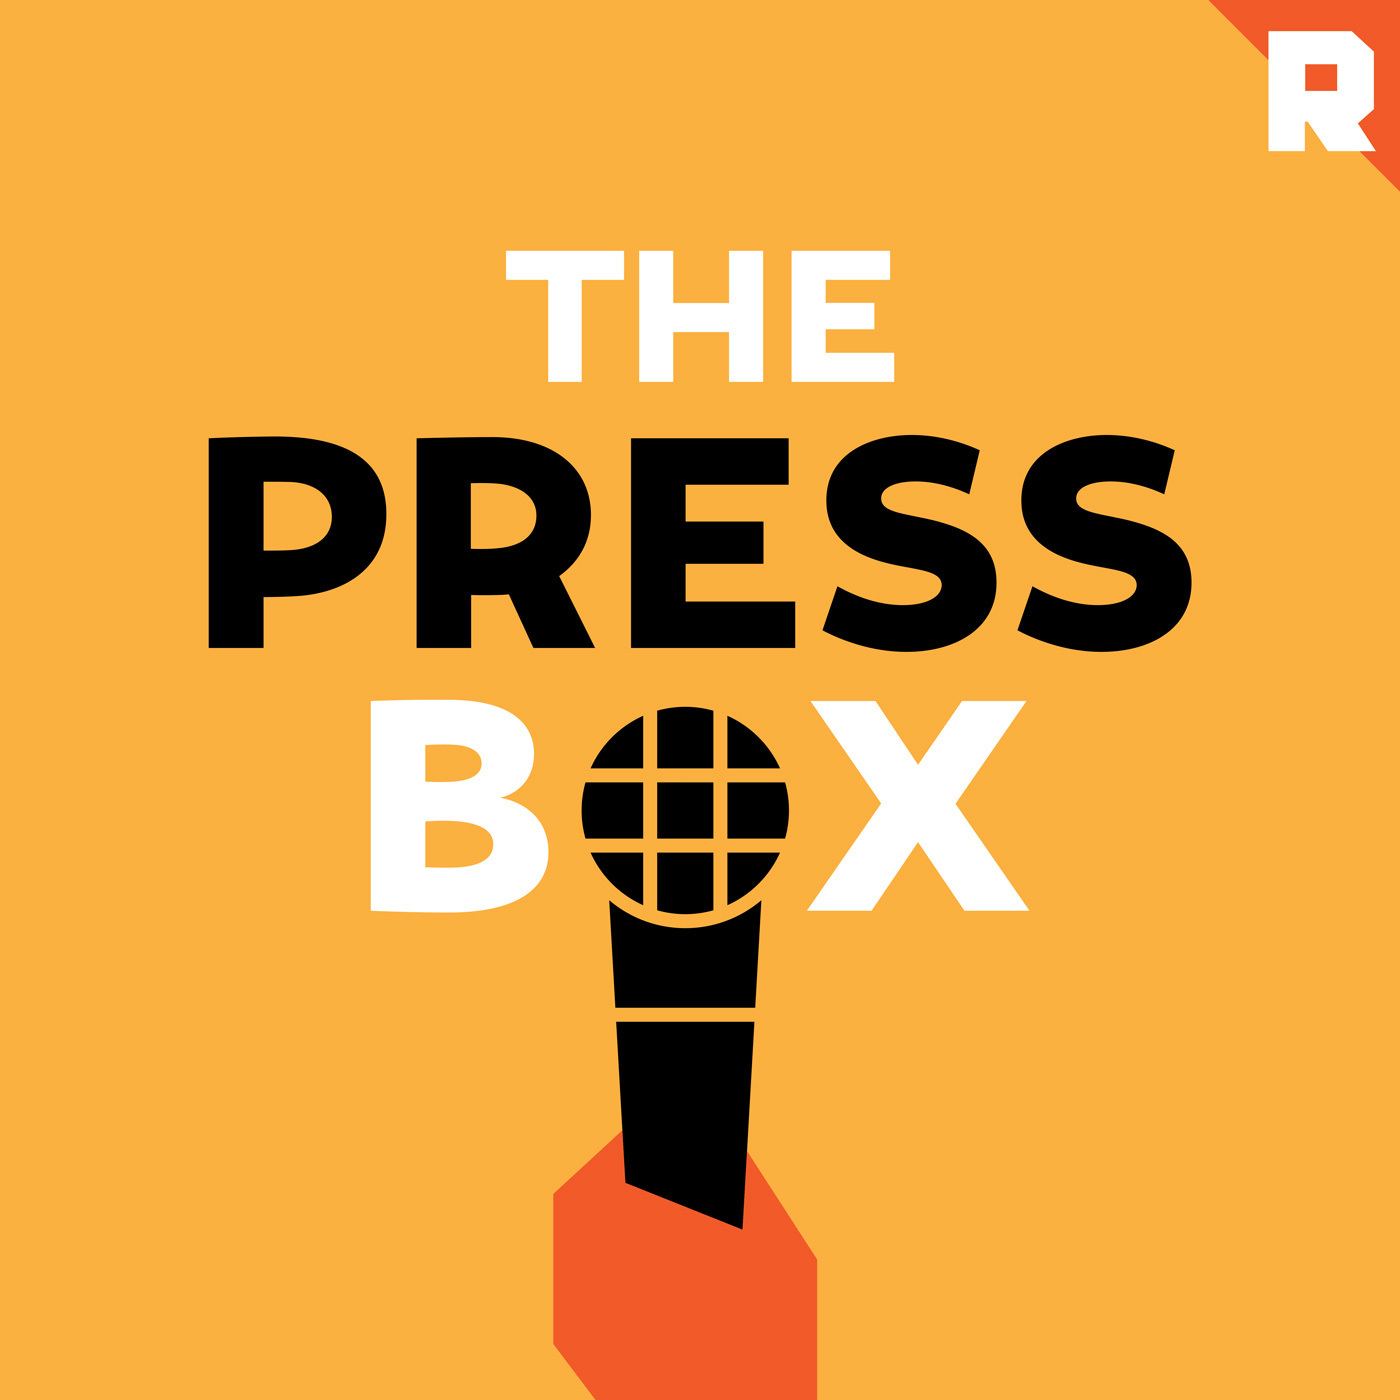 Hurricane Dorian Videos, the Rebooting of Buttigieg, and Conservatives and Dave Chappelle | The Press Box